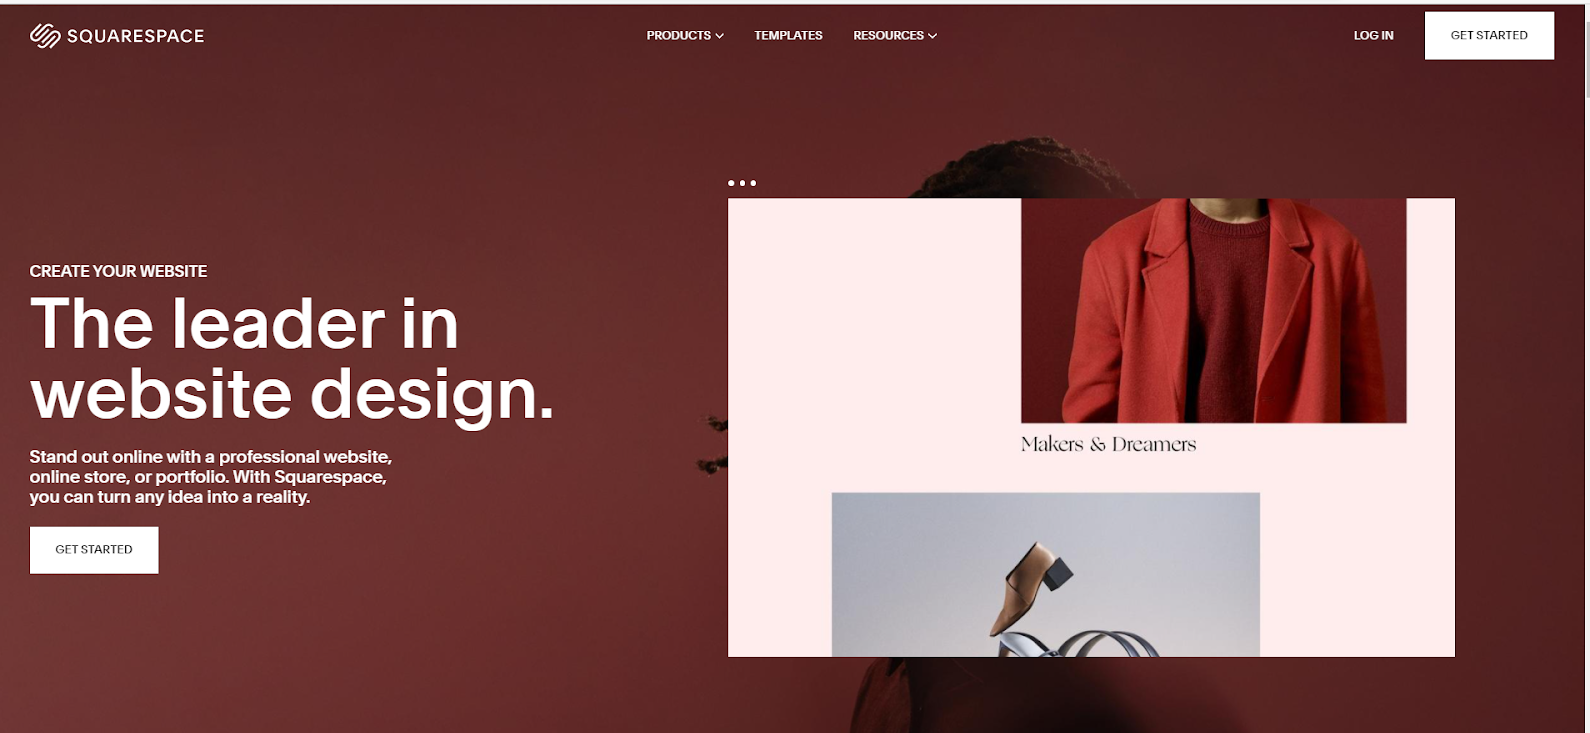 The Pros & Cons of Squarespace